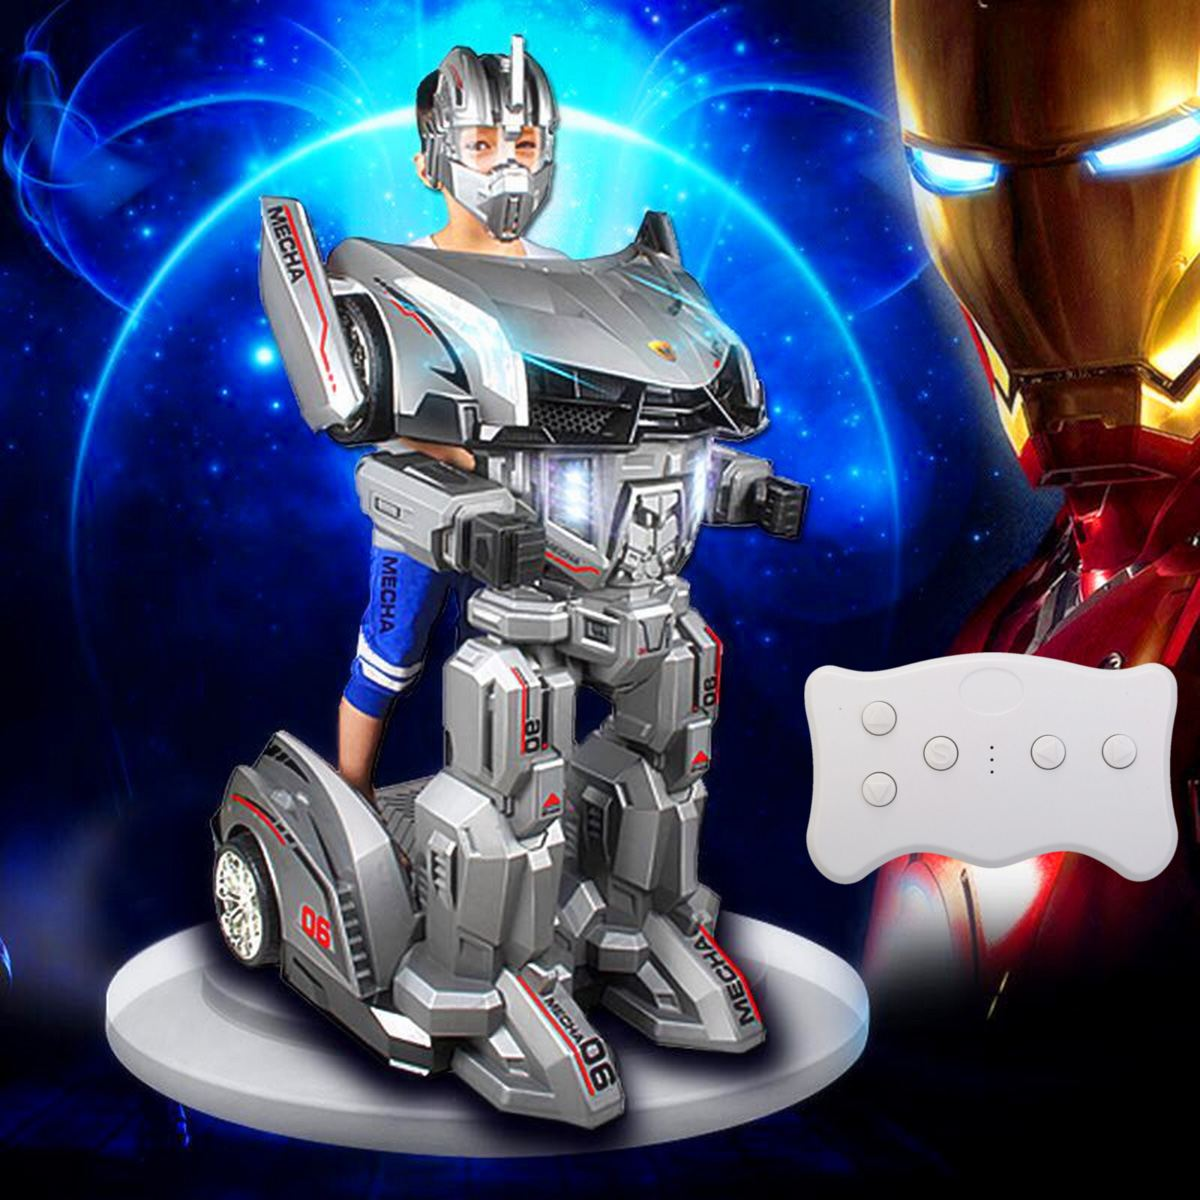 LEORY RC Manned Movable Humanoid Robot Cars Transformer With LED Headlight 25W Motor For Kids Children'Day Gift Amusement Park(China)